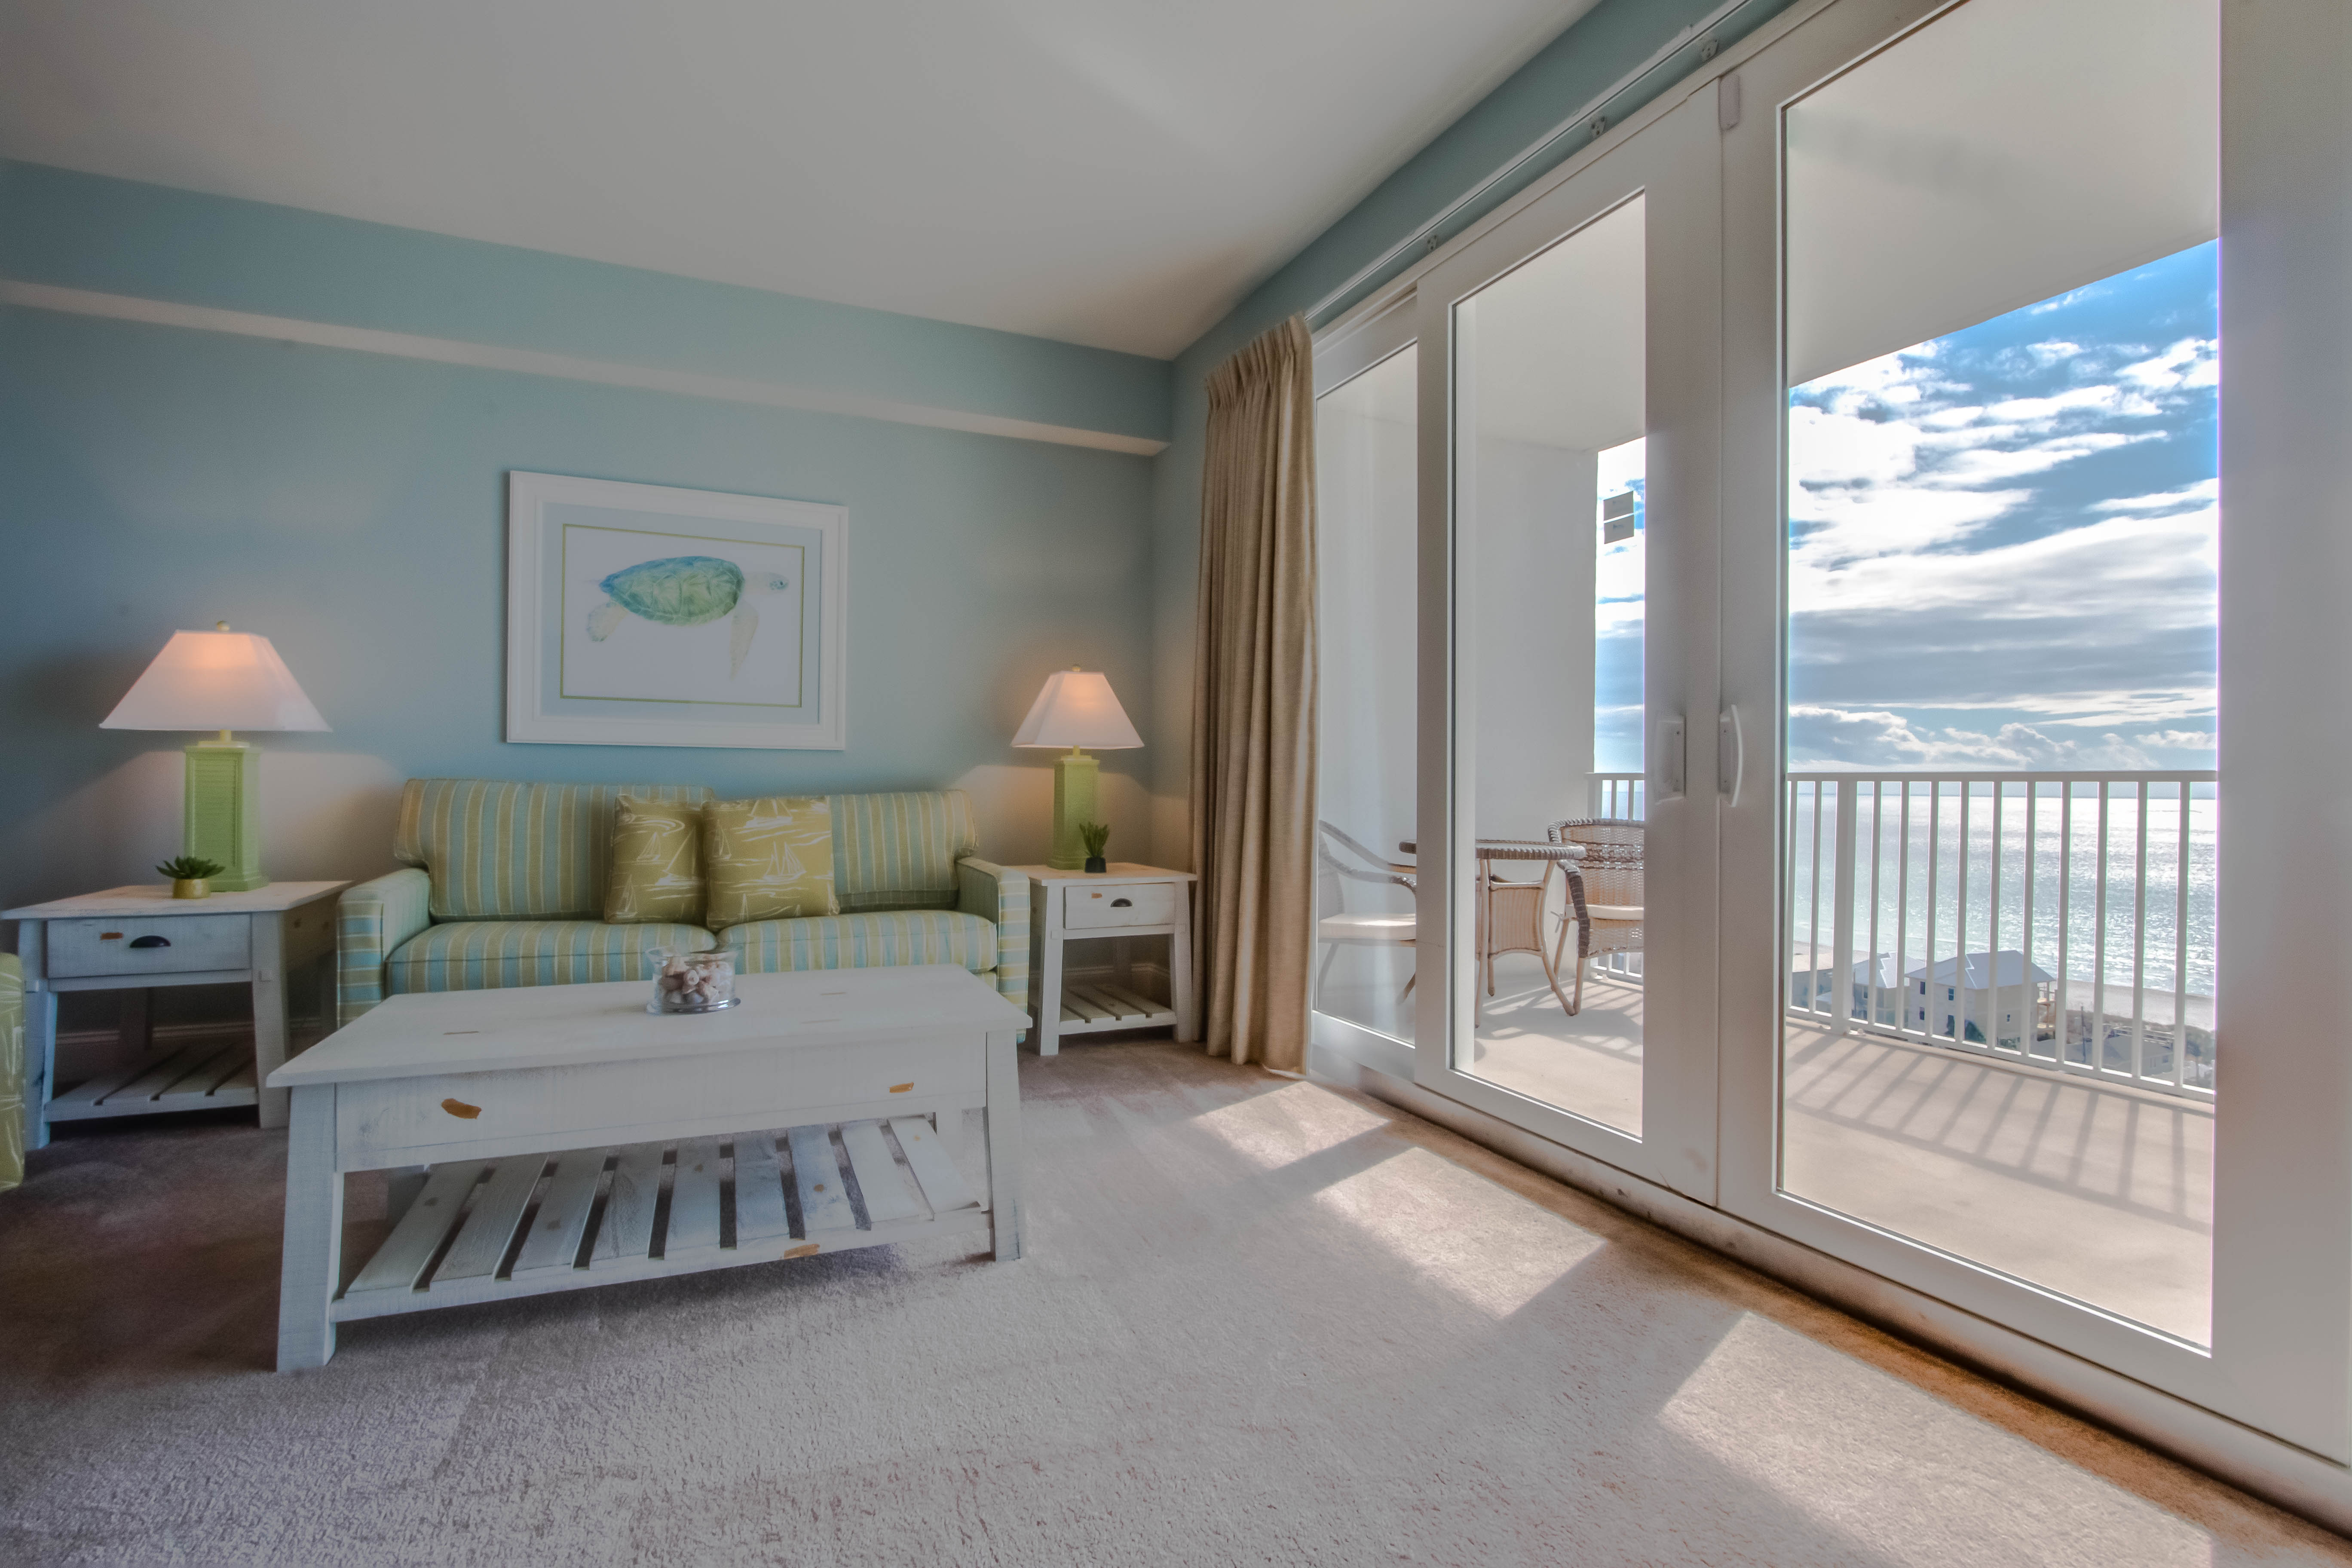 Panama City Beach Condo Laketown Wharf 1105